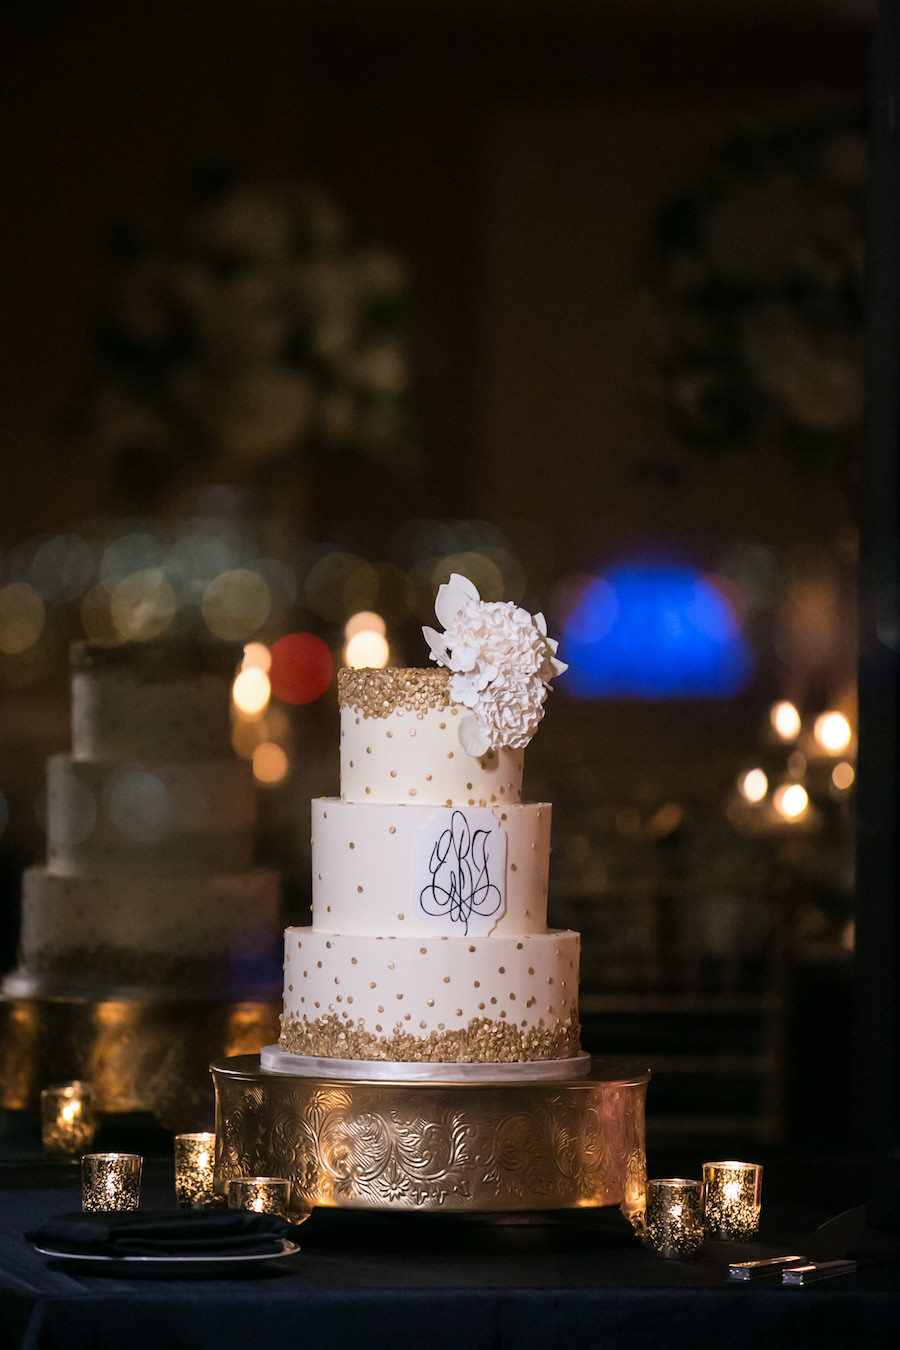 Three Tiered White and Gold Round Wedding Cake with White Floral Hydrangea Cake Topper at Classic Gold and Navy Wedding   Tampa Bay Cake Baker Hands on Sweets